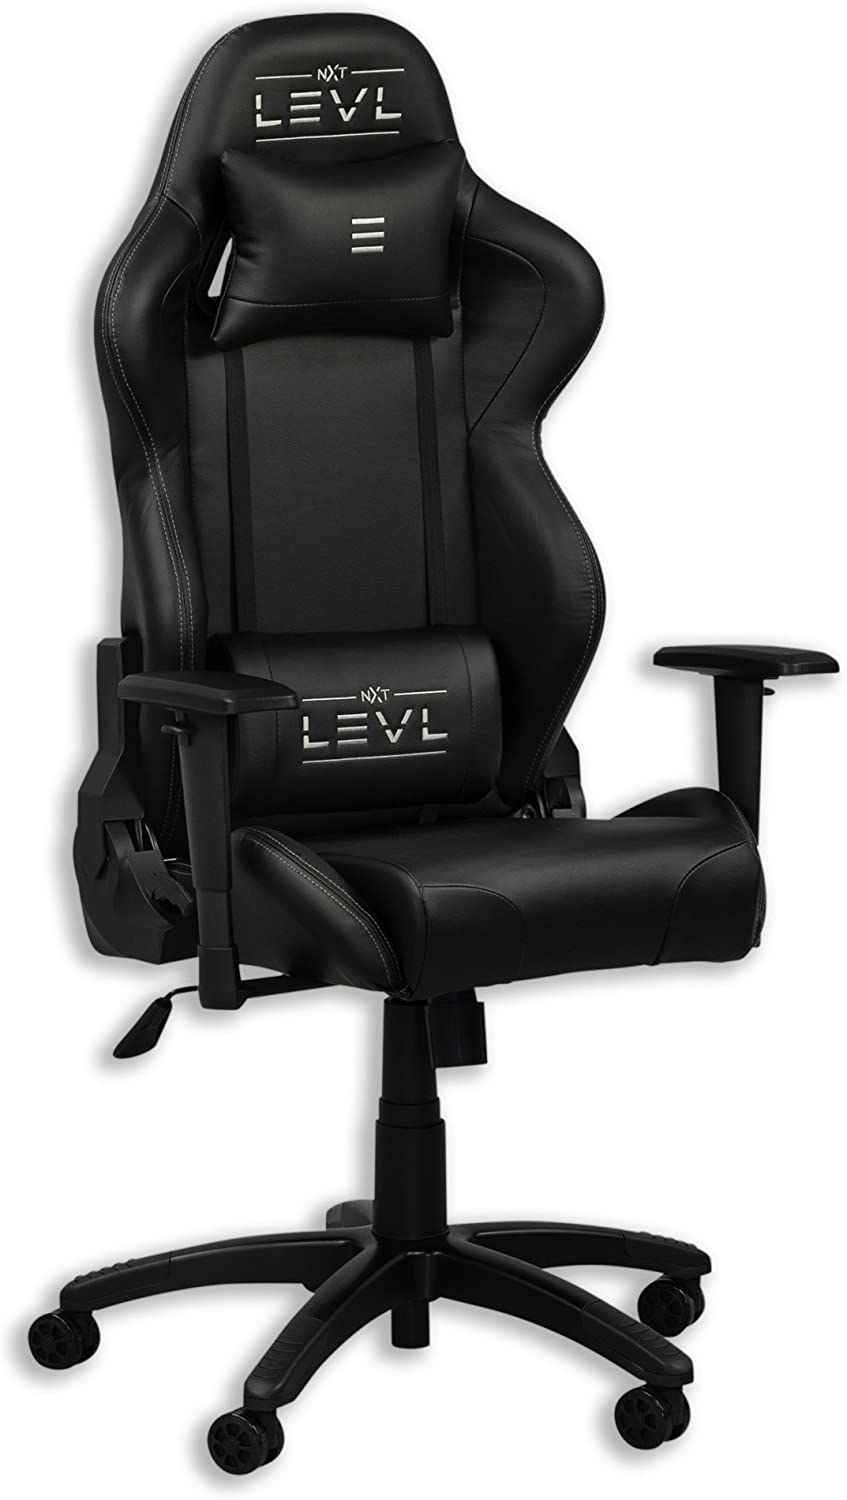 NXT LEVL Gaming Alpha Series Gaming Chair,Office Chair, Heavy Duty, with Neck and Lumbar Pillows Medium, Black Black